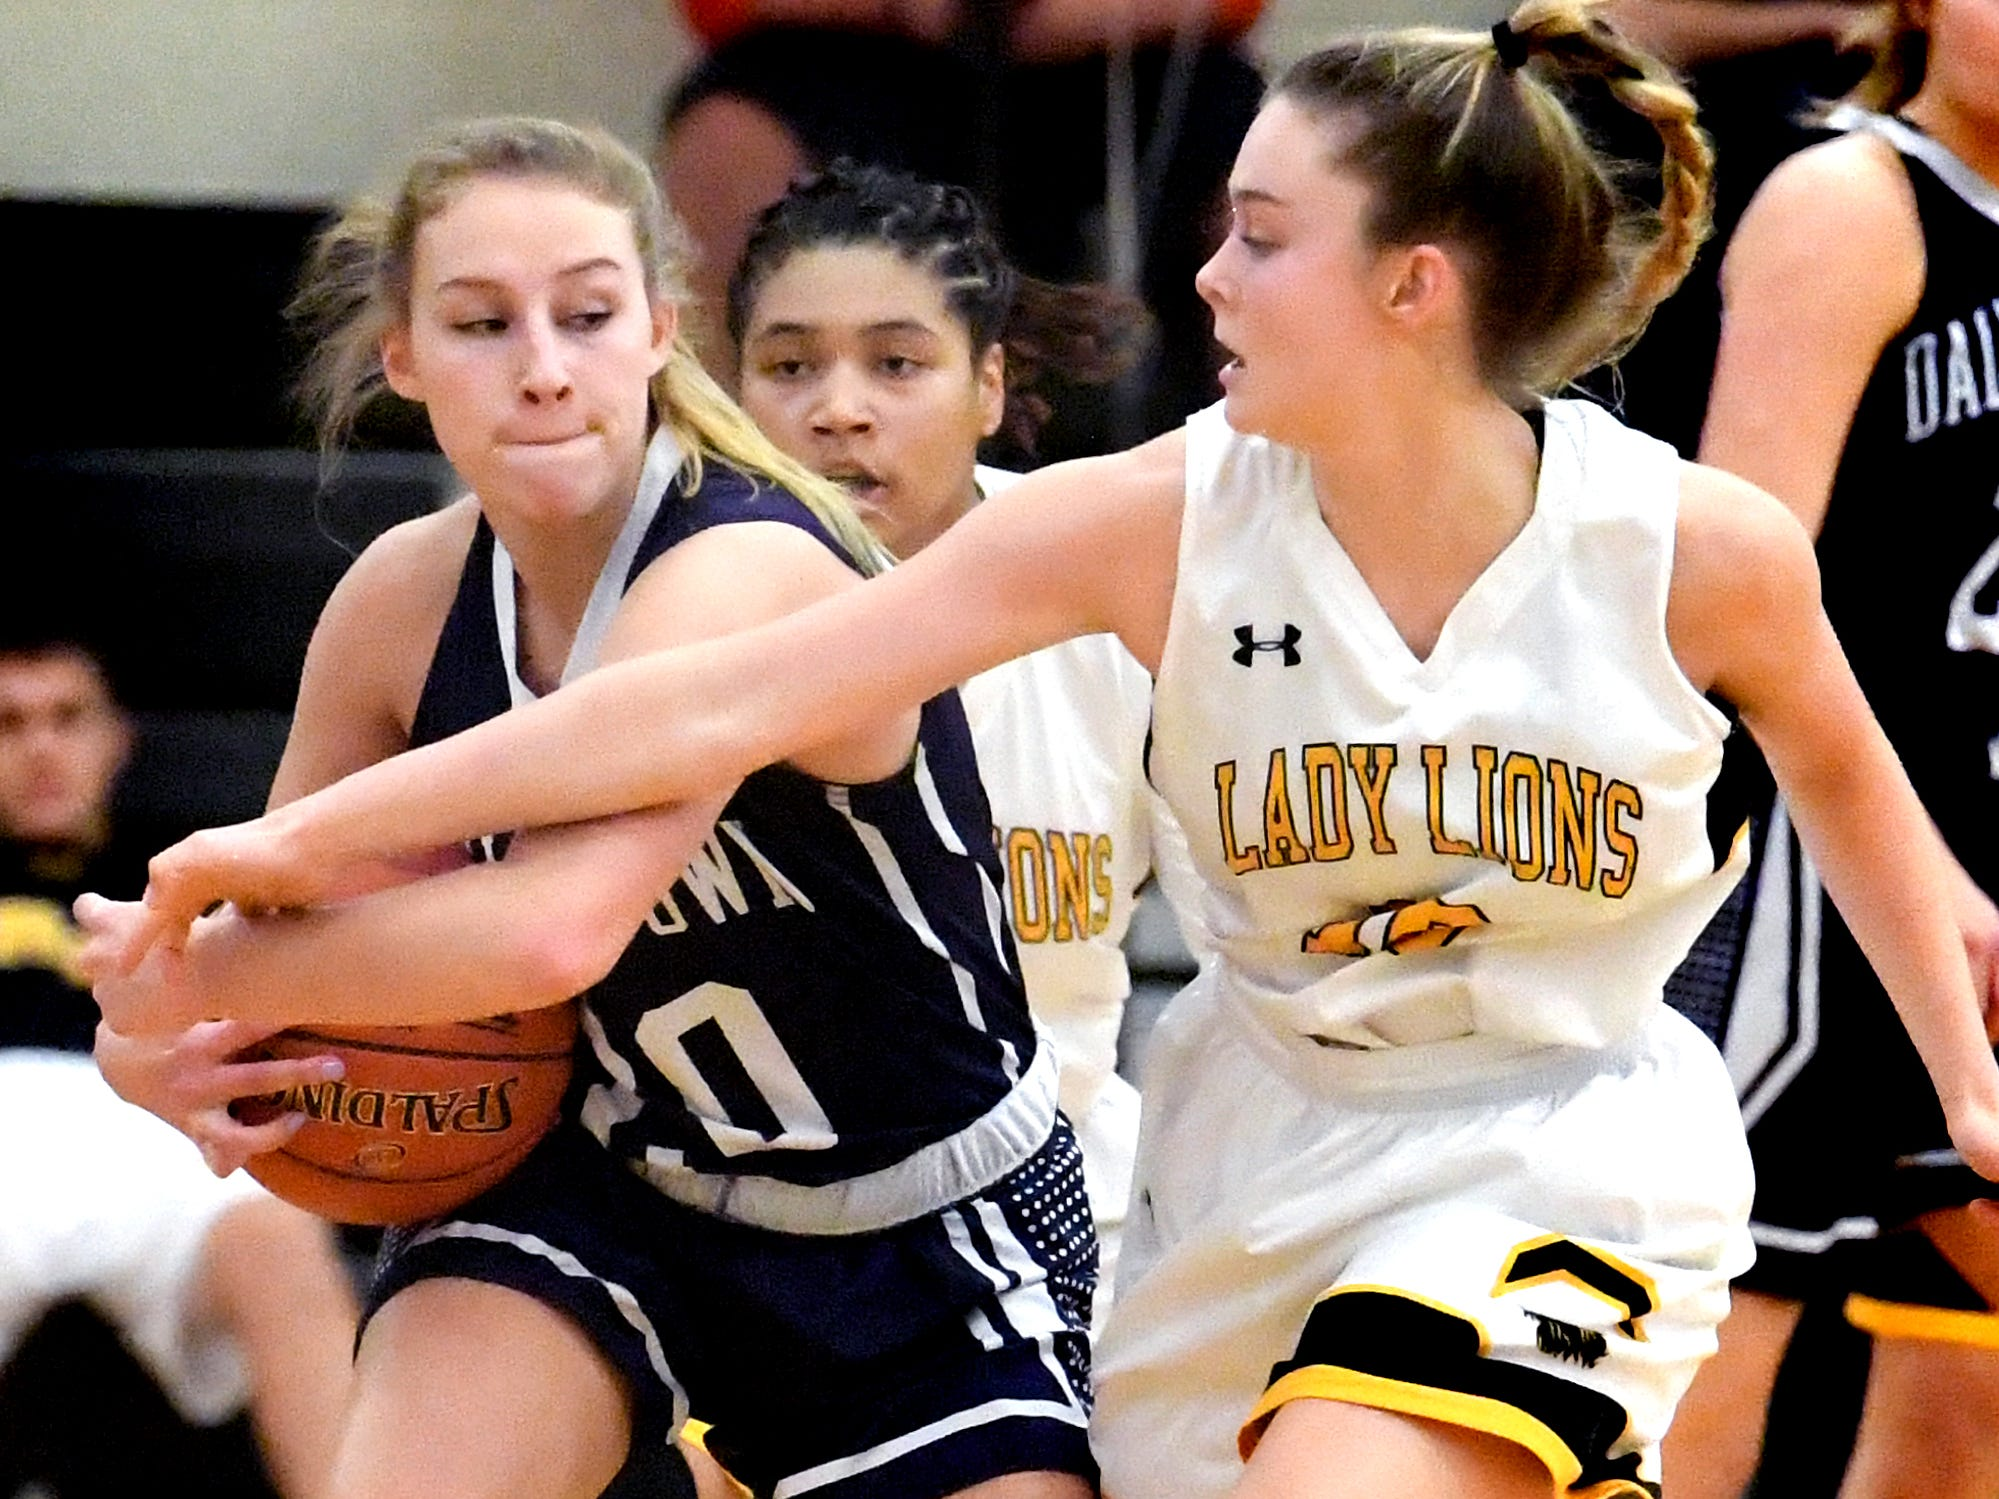 Dallastown's Lily Jamison protects the ball with pressure from Red LIon's Alleney Klunk during basketball action at Red Lion Tuesday, Feb. 5, 2019. Bill Kalina photo